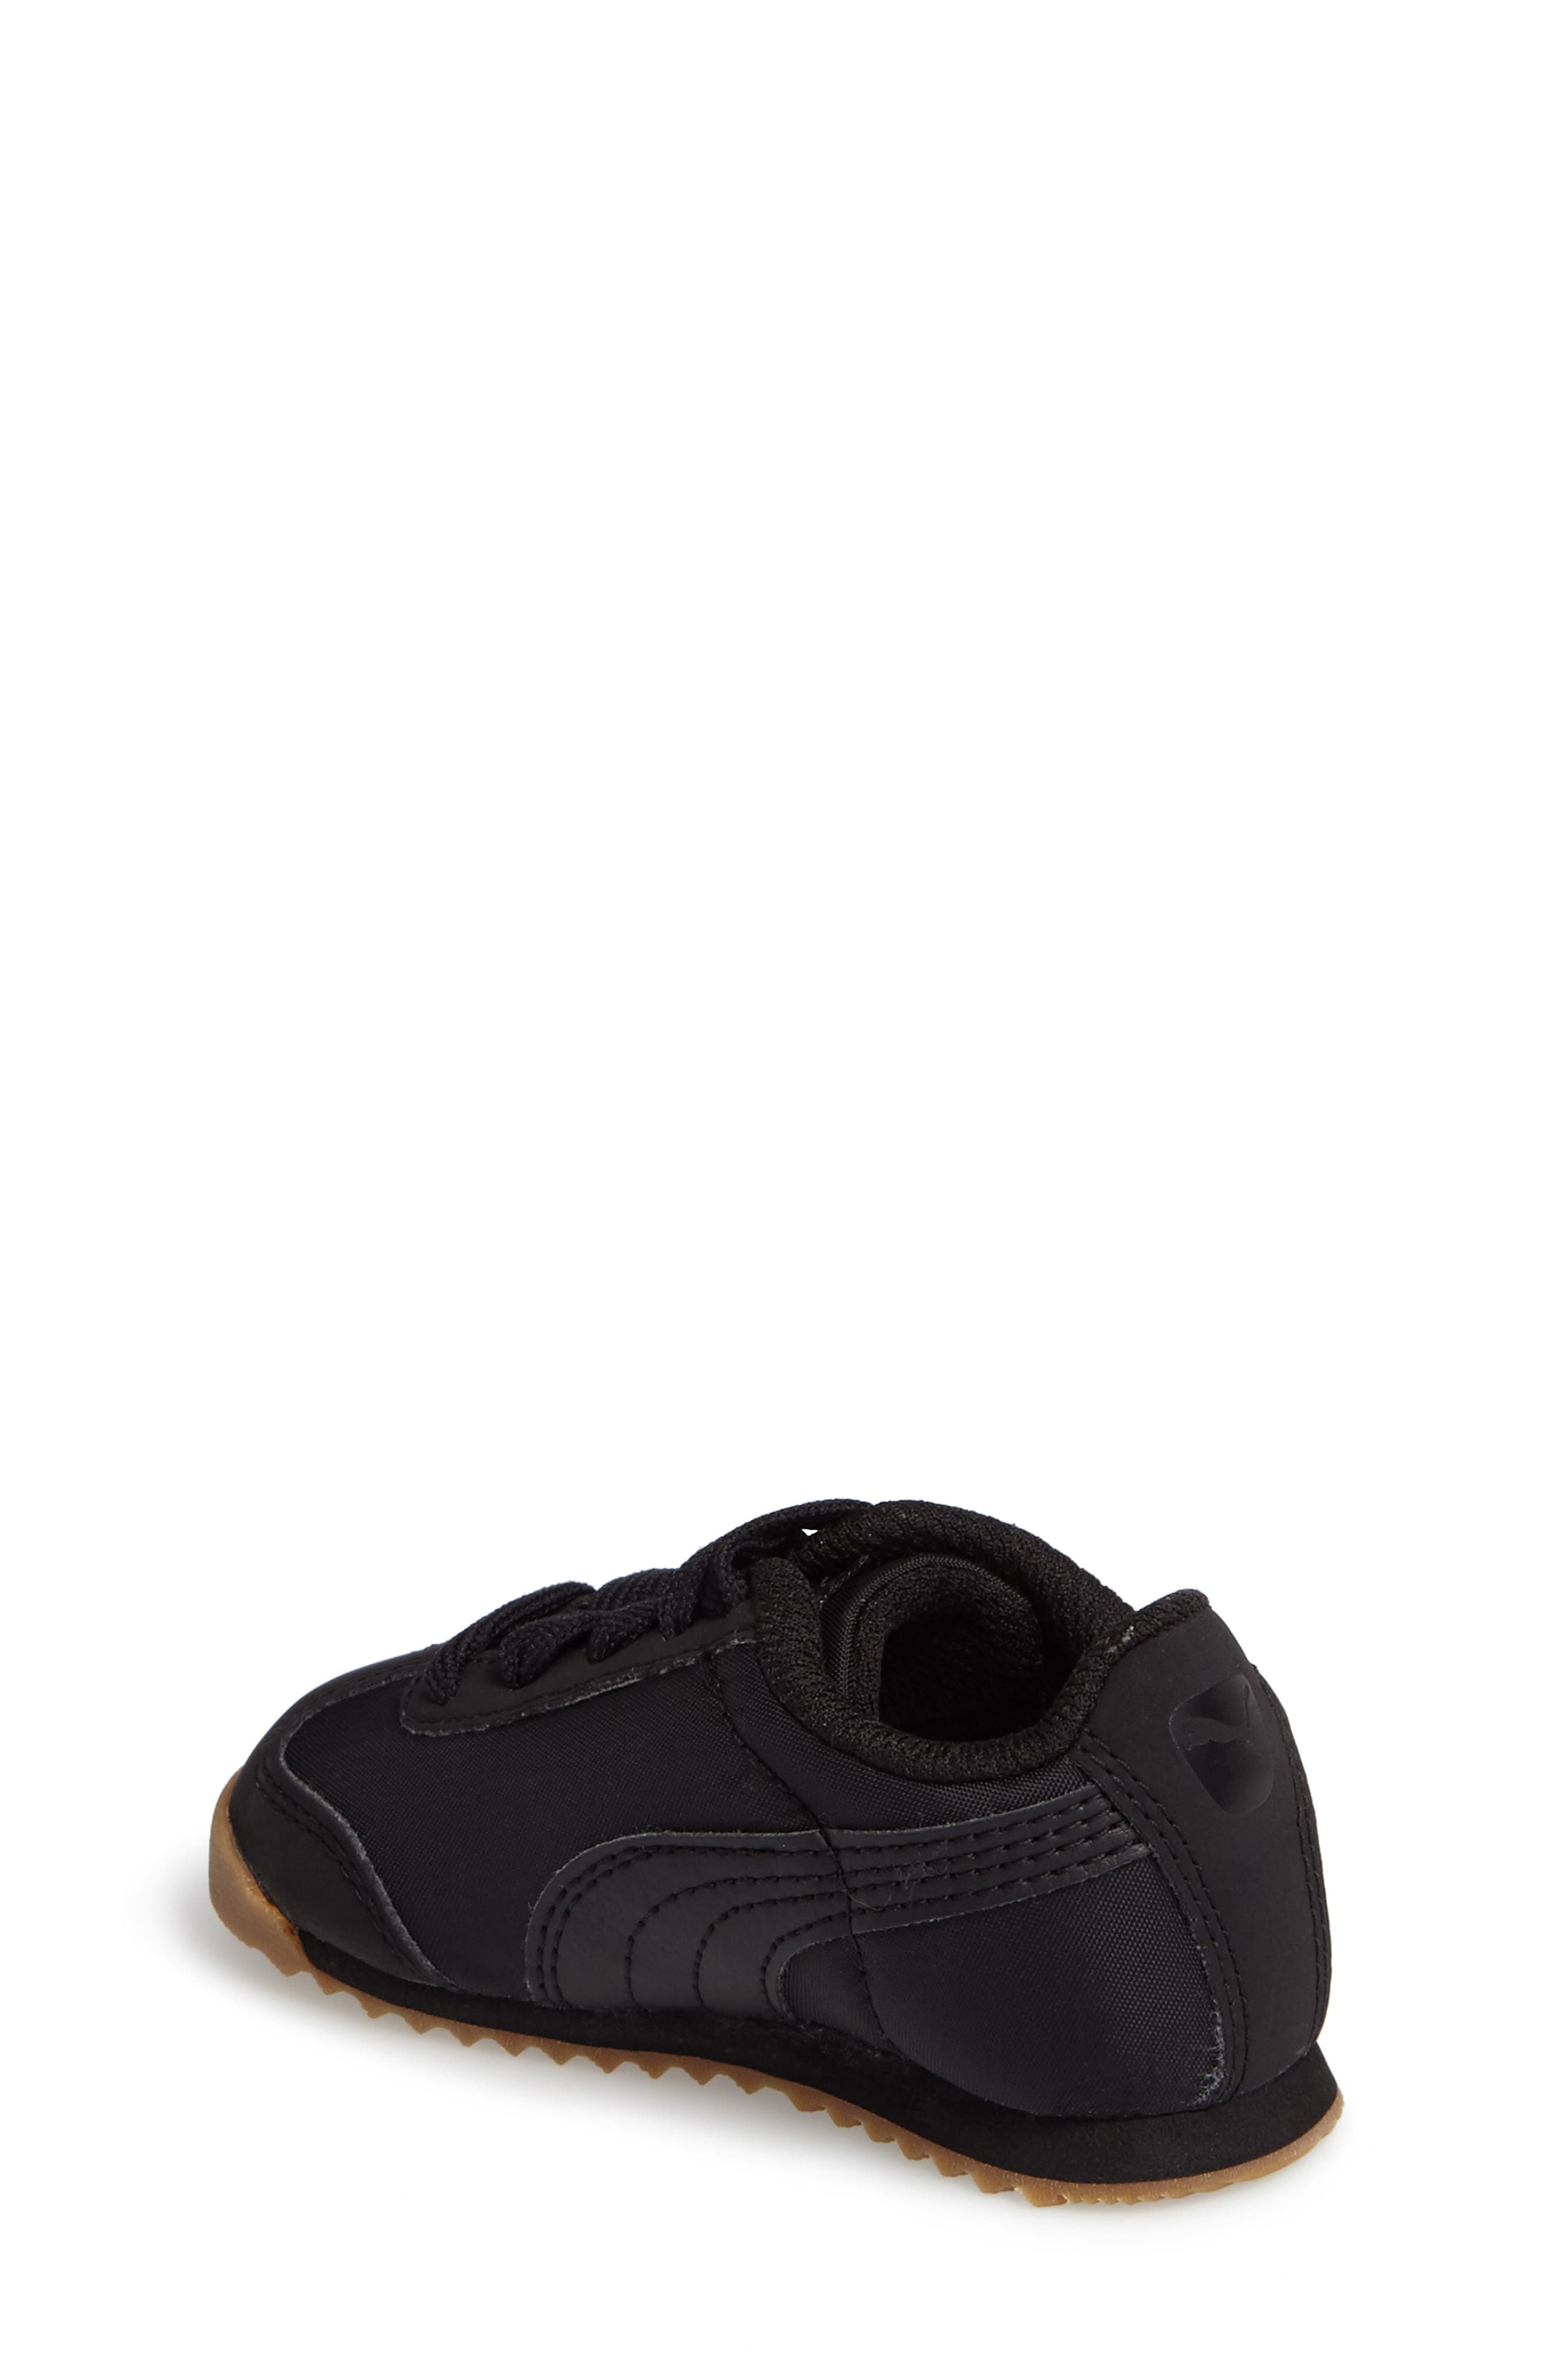 Roma Basic Summer Sneaker,                             Alternate thumbnail 3, color,